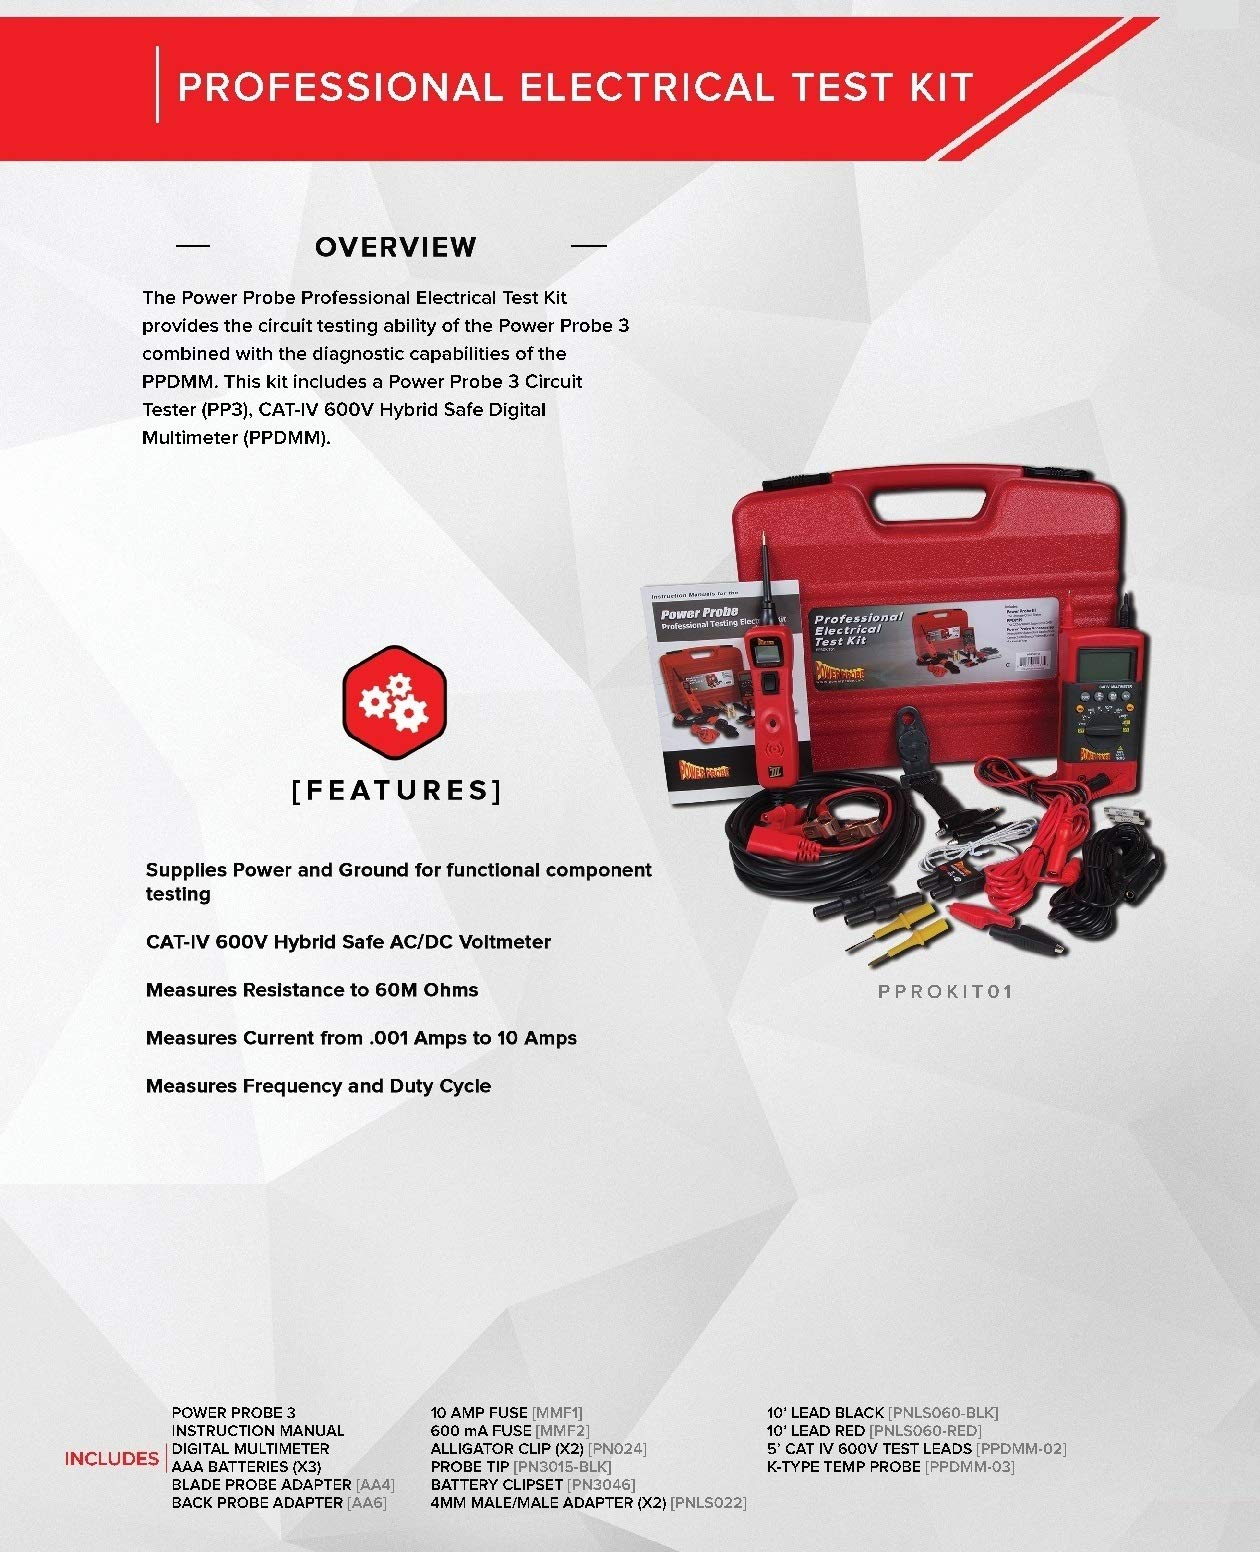 Power Probe Professional Electrical Test Kit - Red (PPROKIT01) Inc III w/PPDMM & Accessories [Measures Resistance, Current & Frequency] by Power Probe (Image #2)